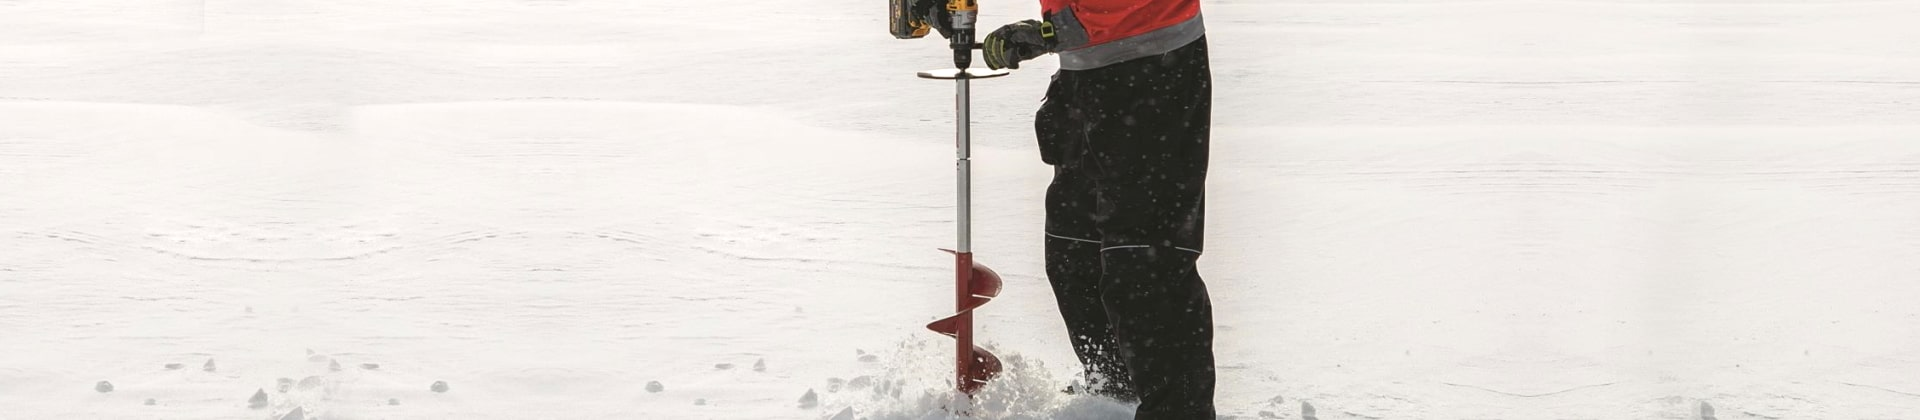 Best Ice Augers - Top Rated and Reviewed